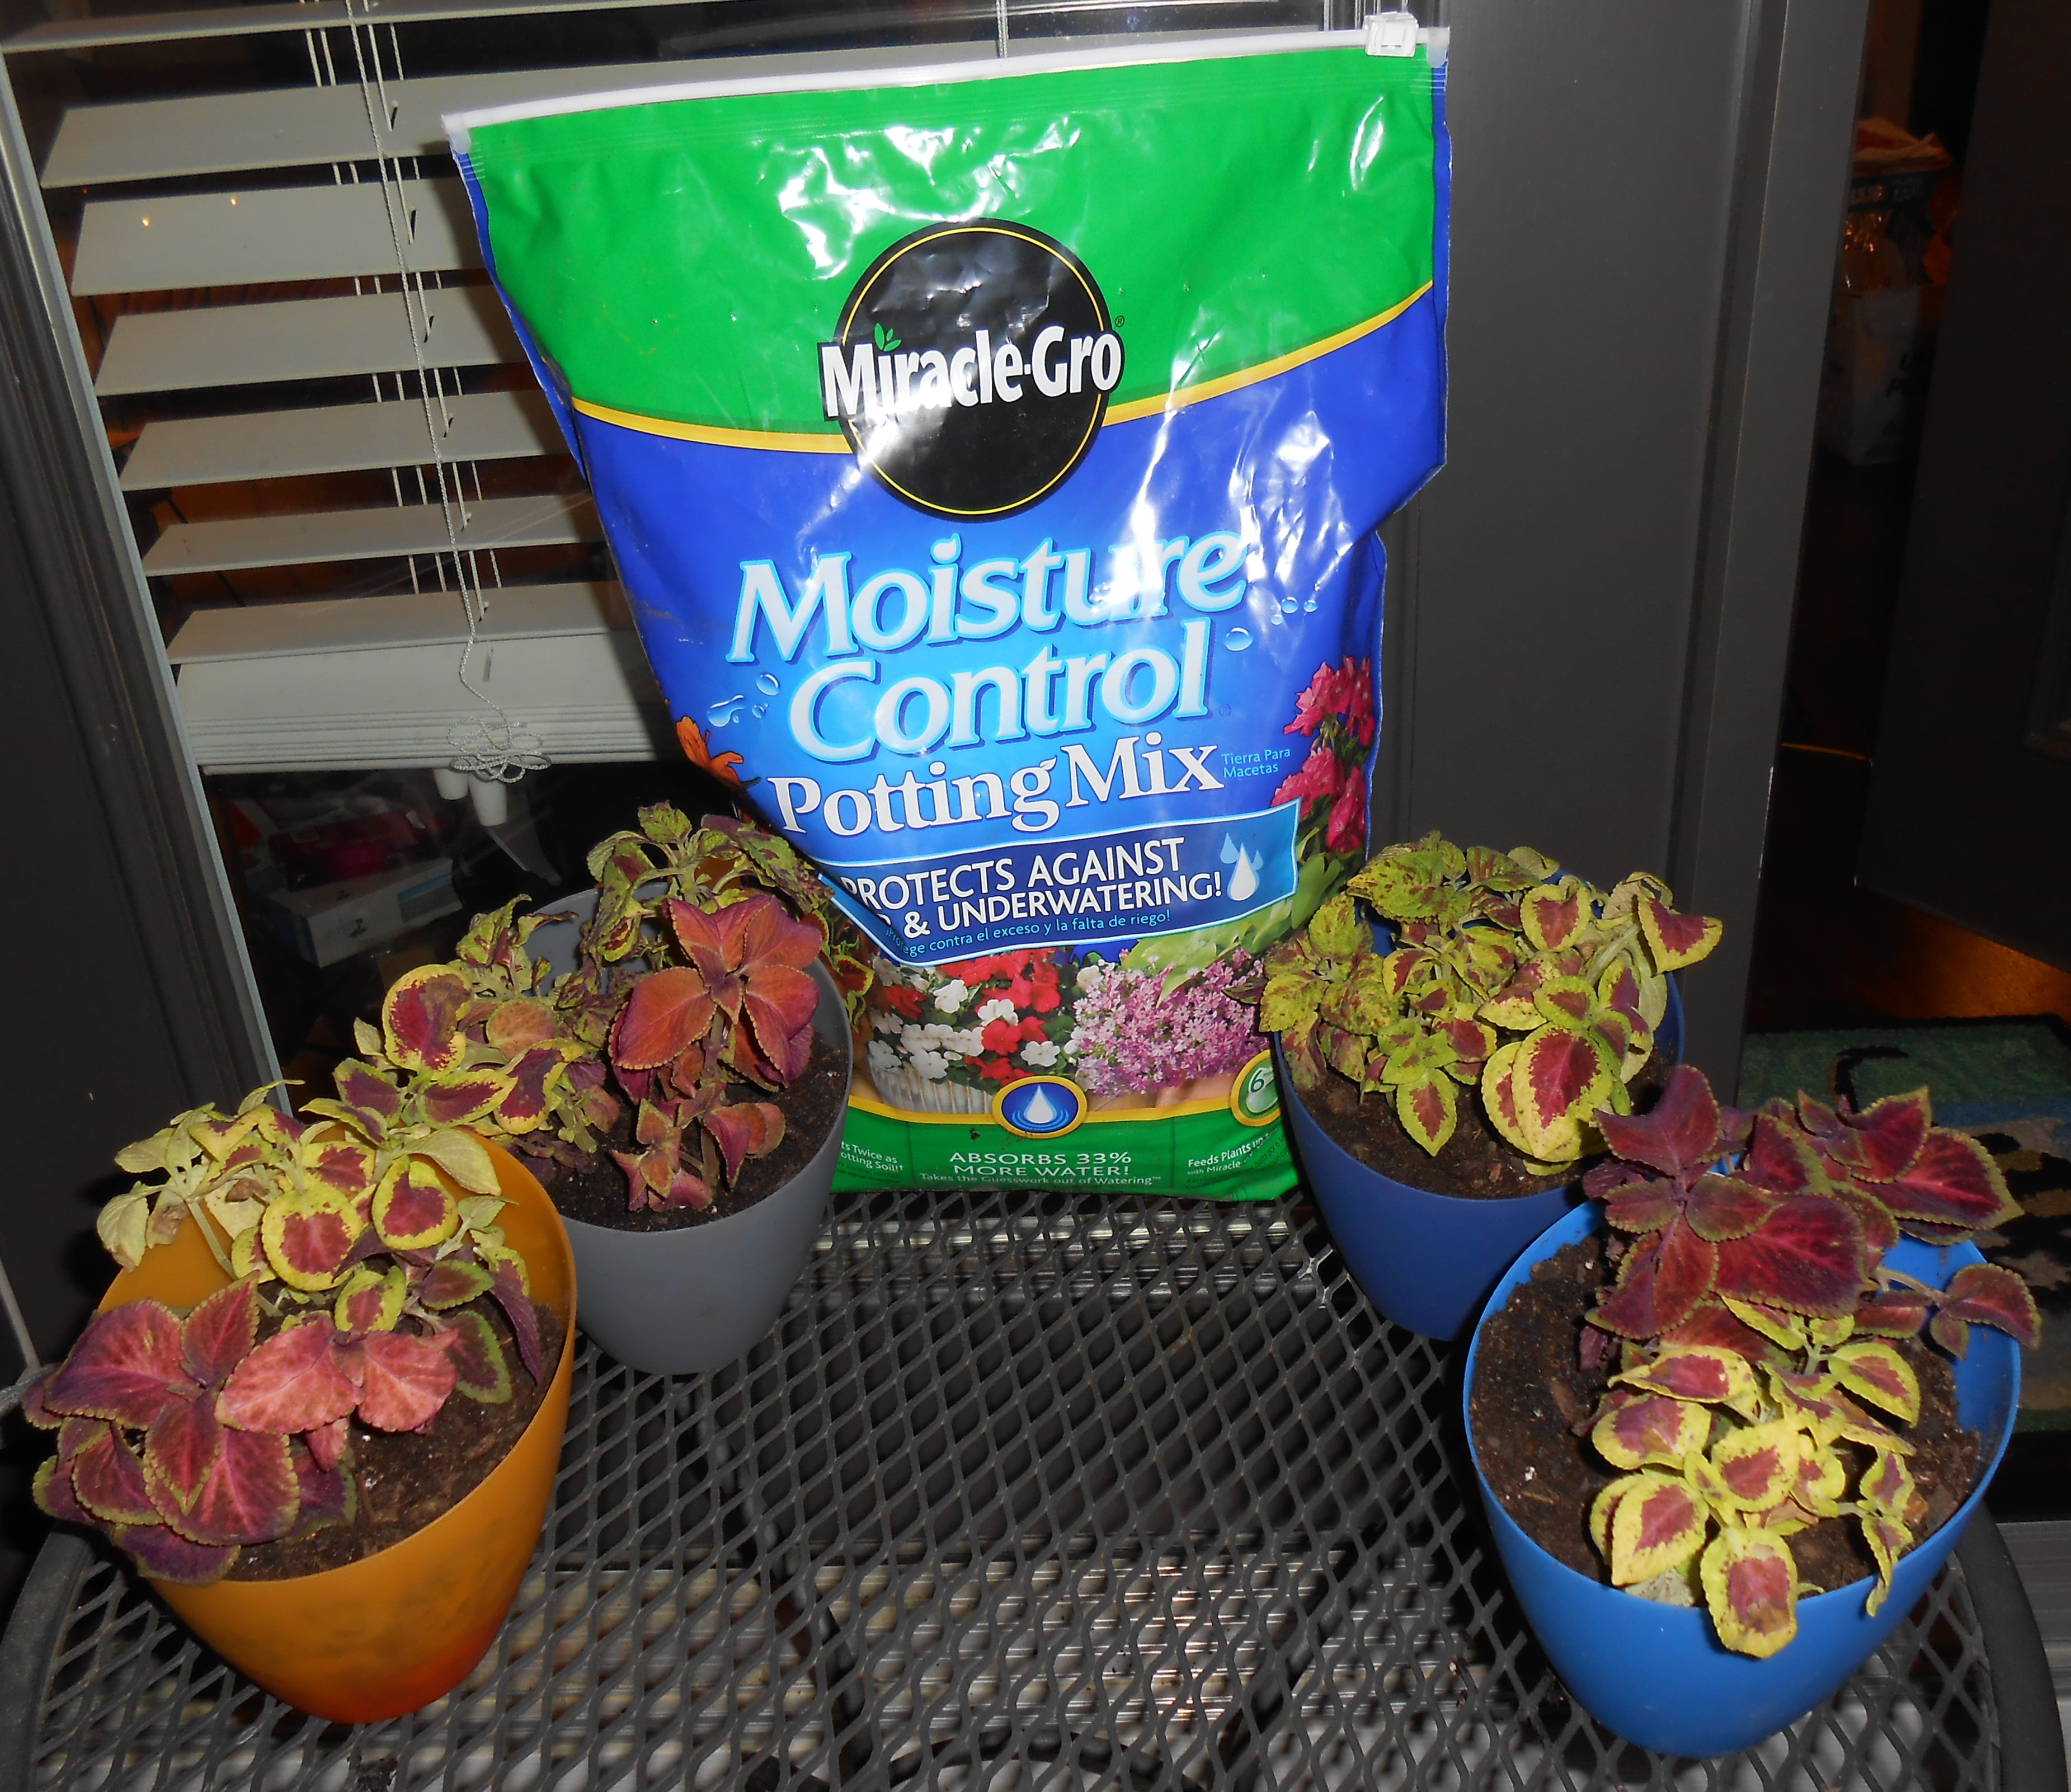 DIY Lamp Shade Container Gardening Ideas: Miracle Gro's The Gro Project